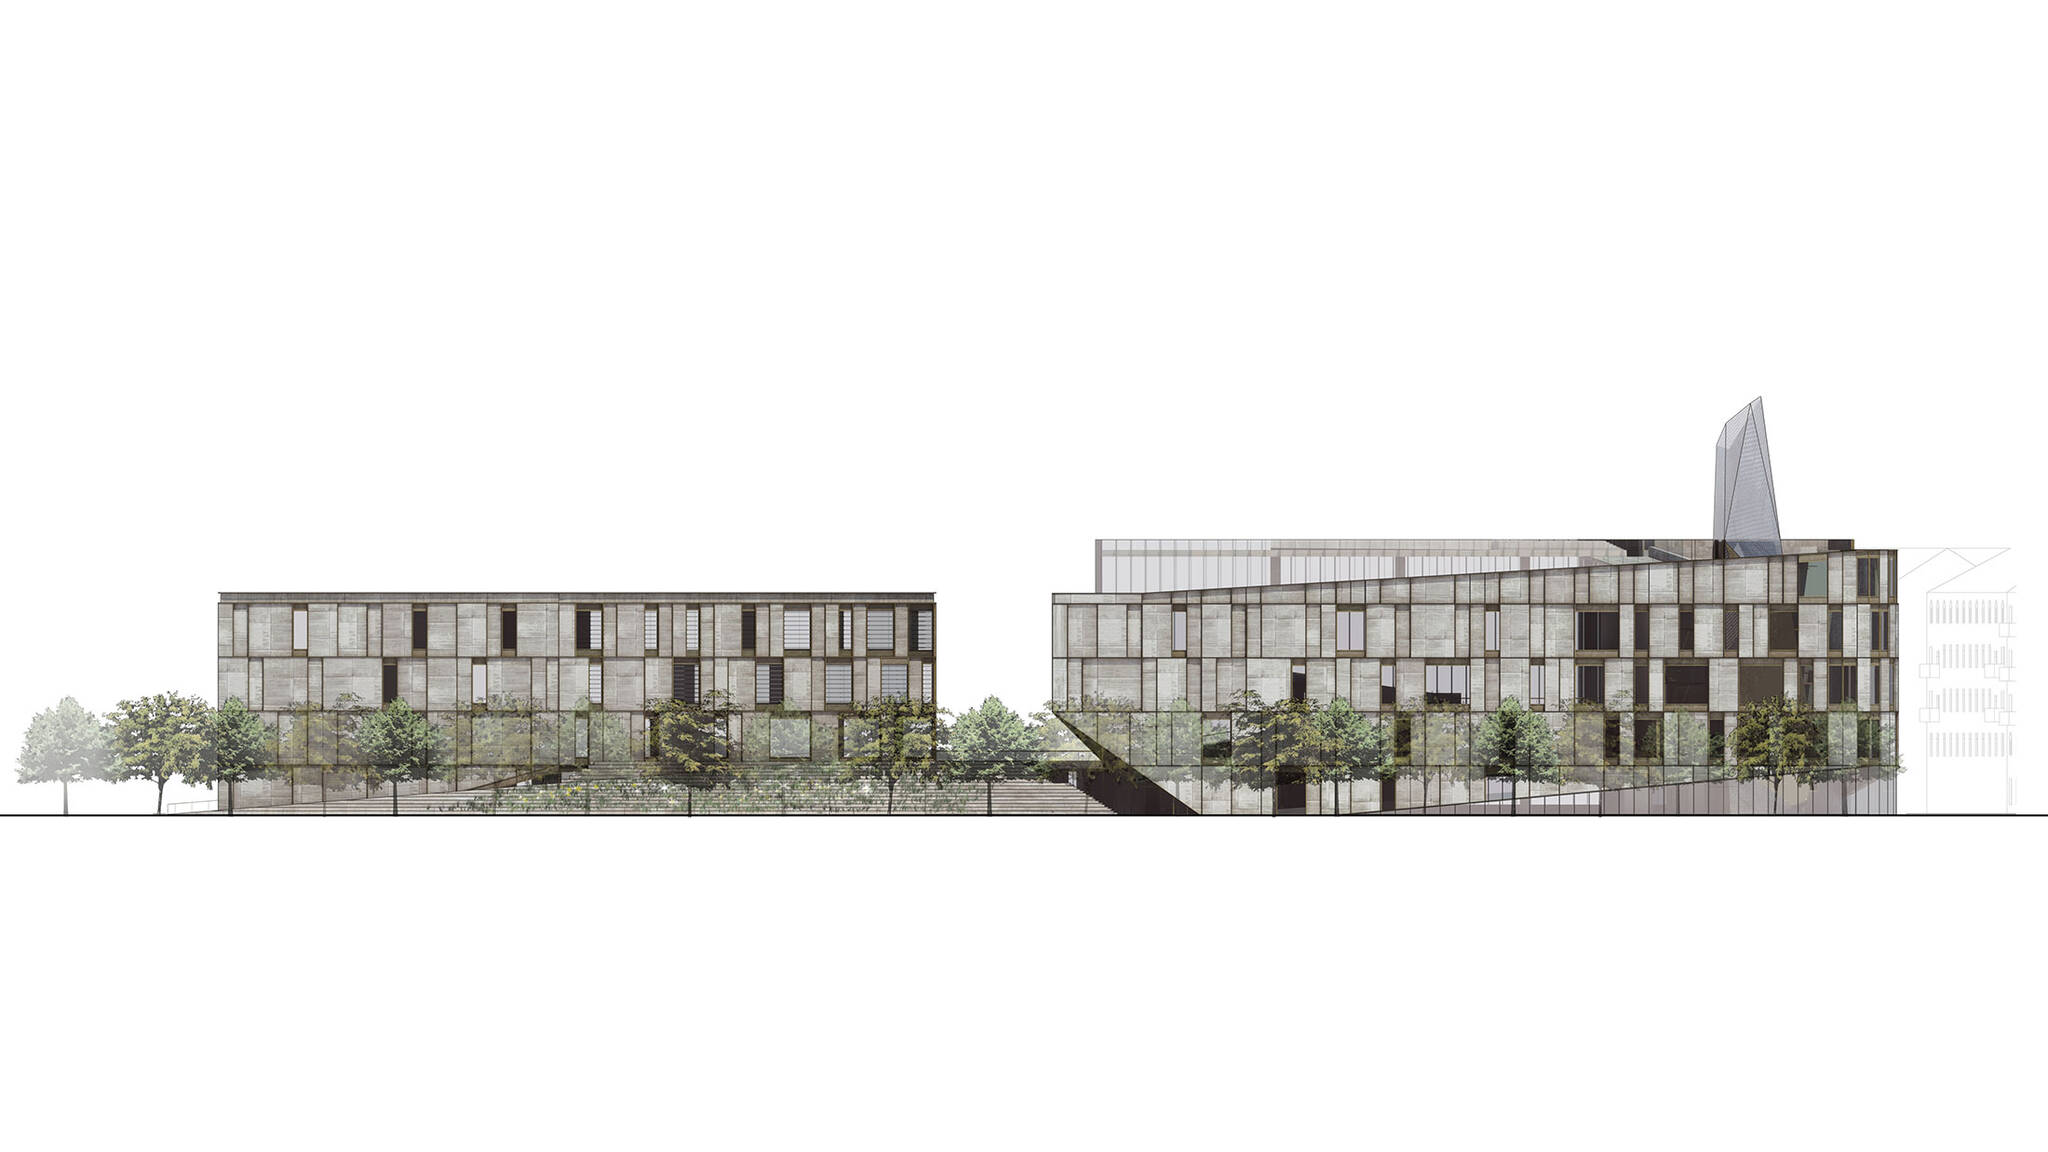 Front elevation of the Museum of Etnography project located in Budapest, Hungary designed by the architecture studio Danny Forster & Architecture